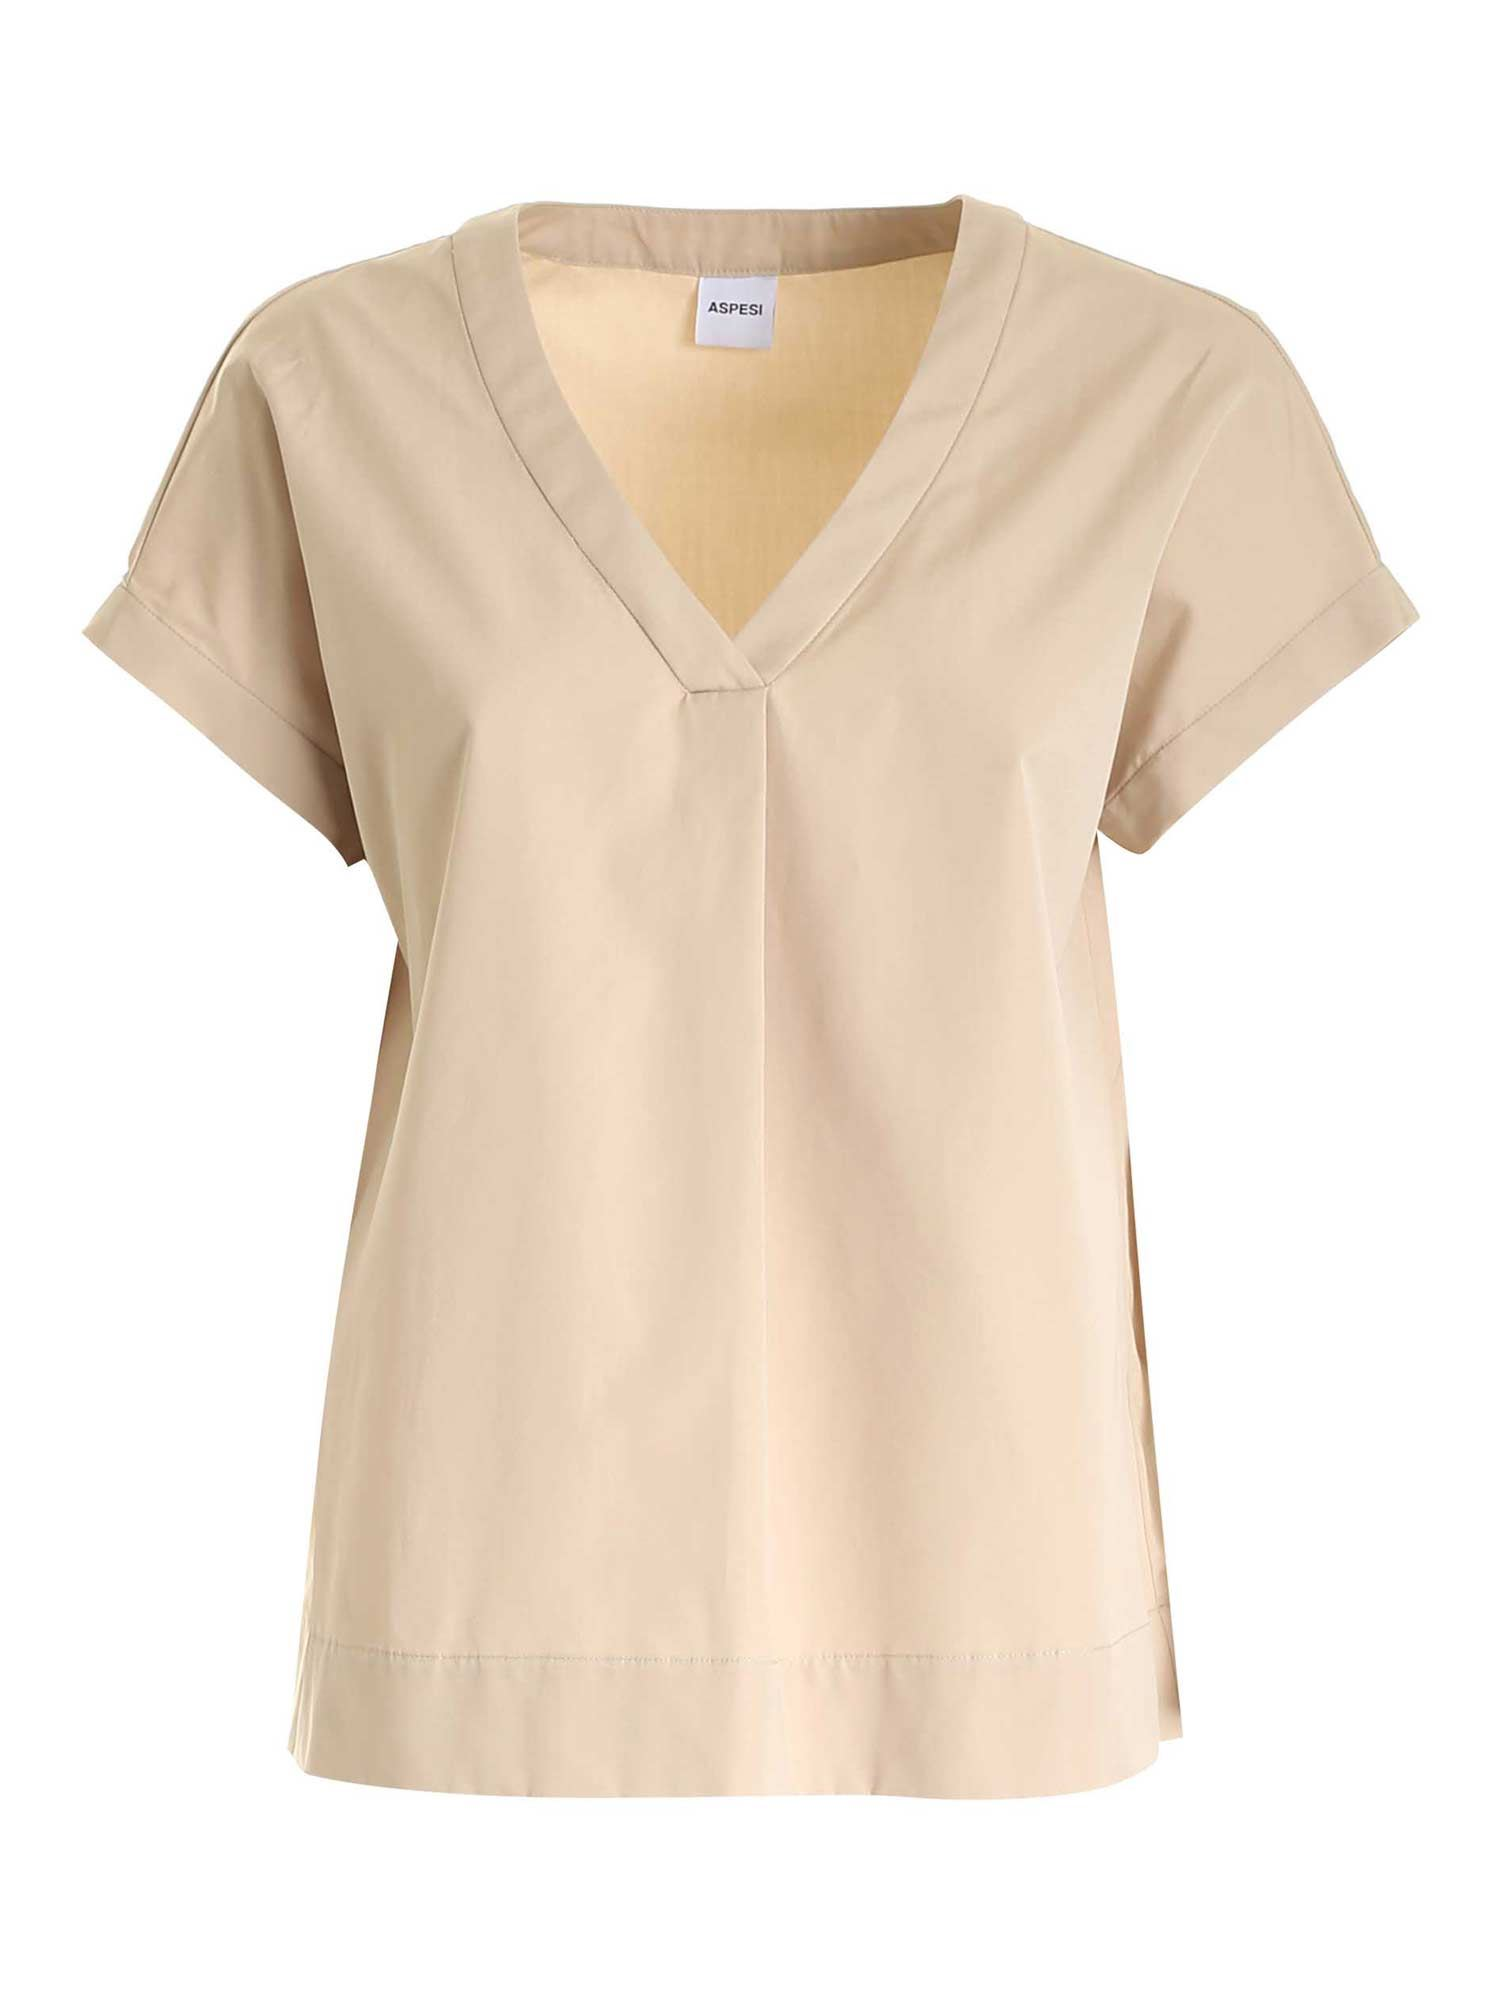 Aspesi RELAXED FIT BLOUSE IN BEIGE